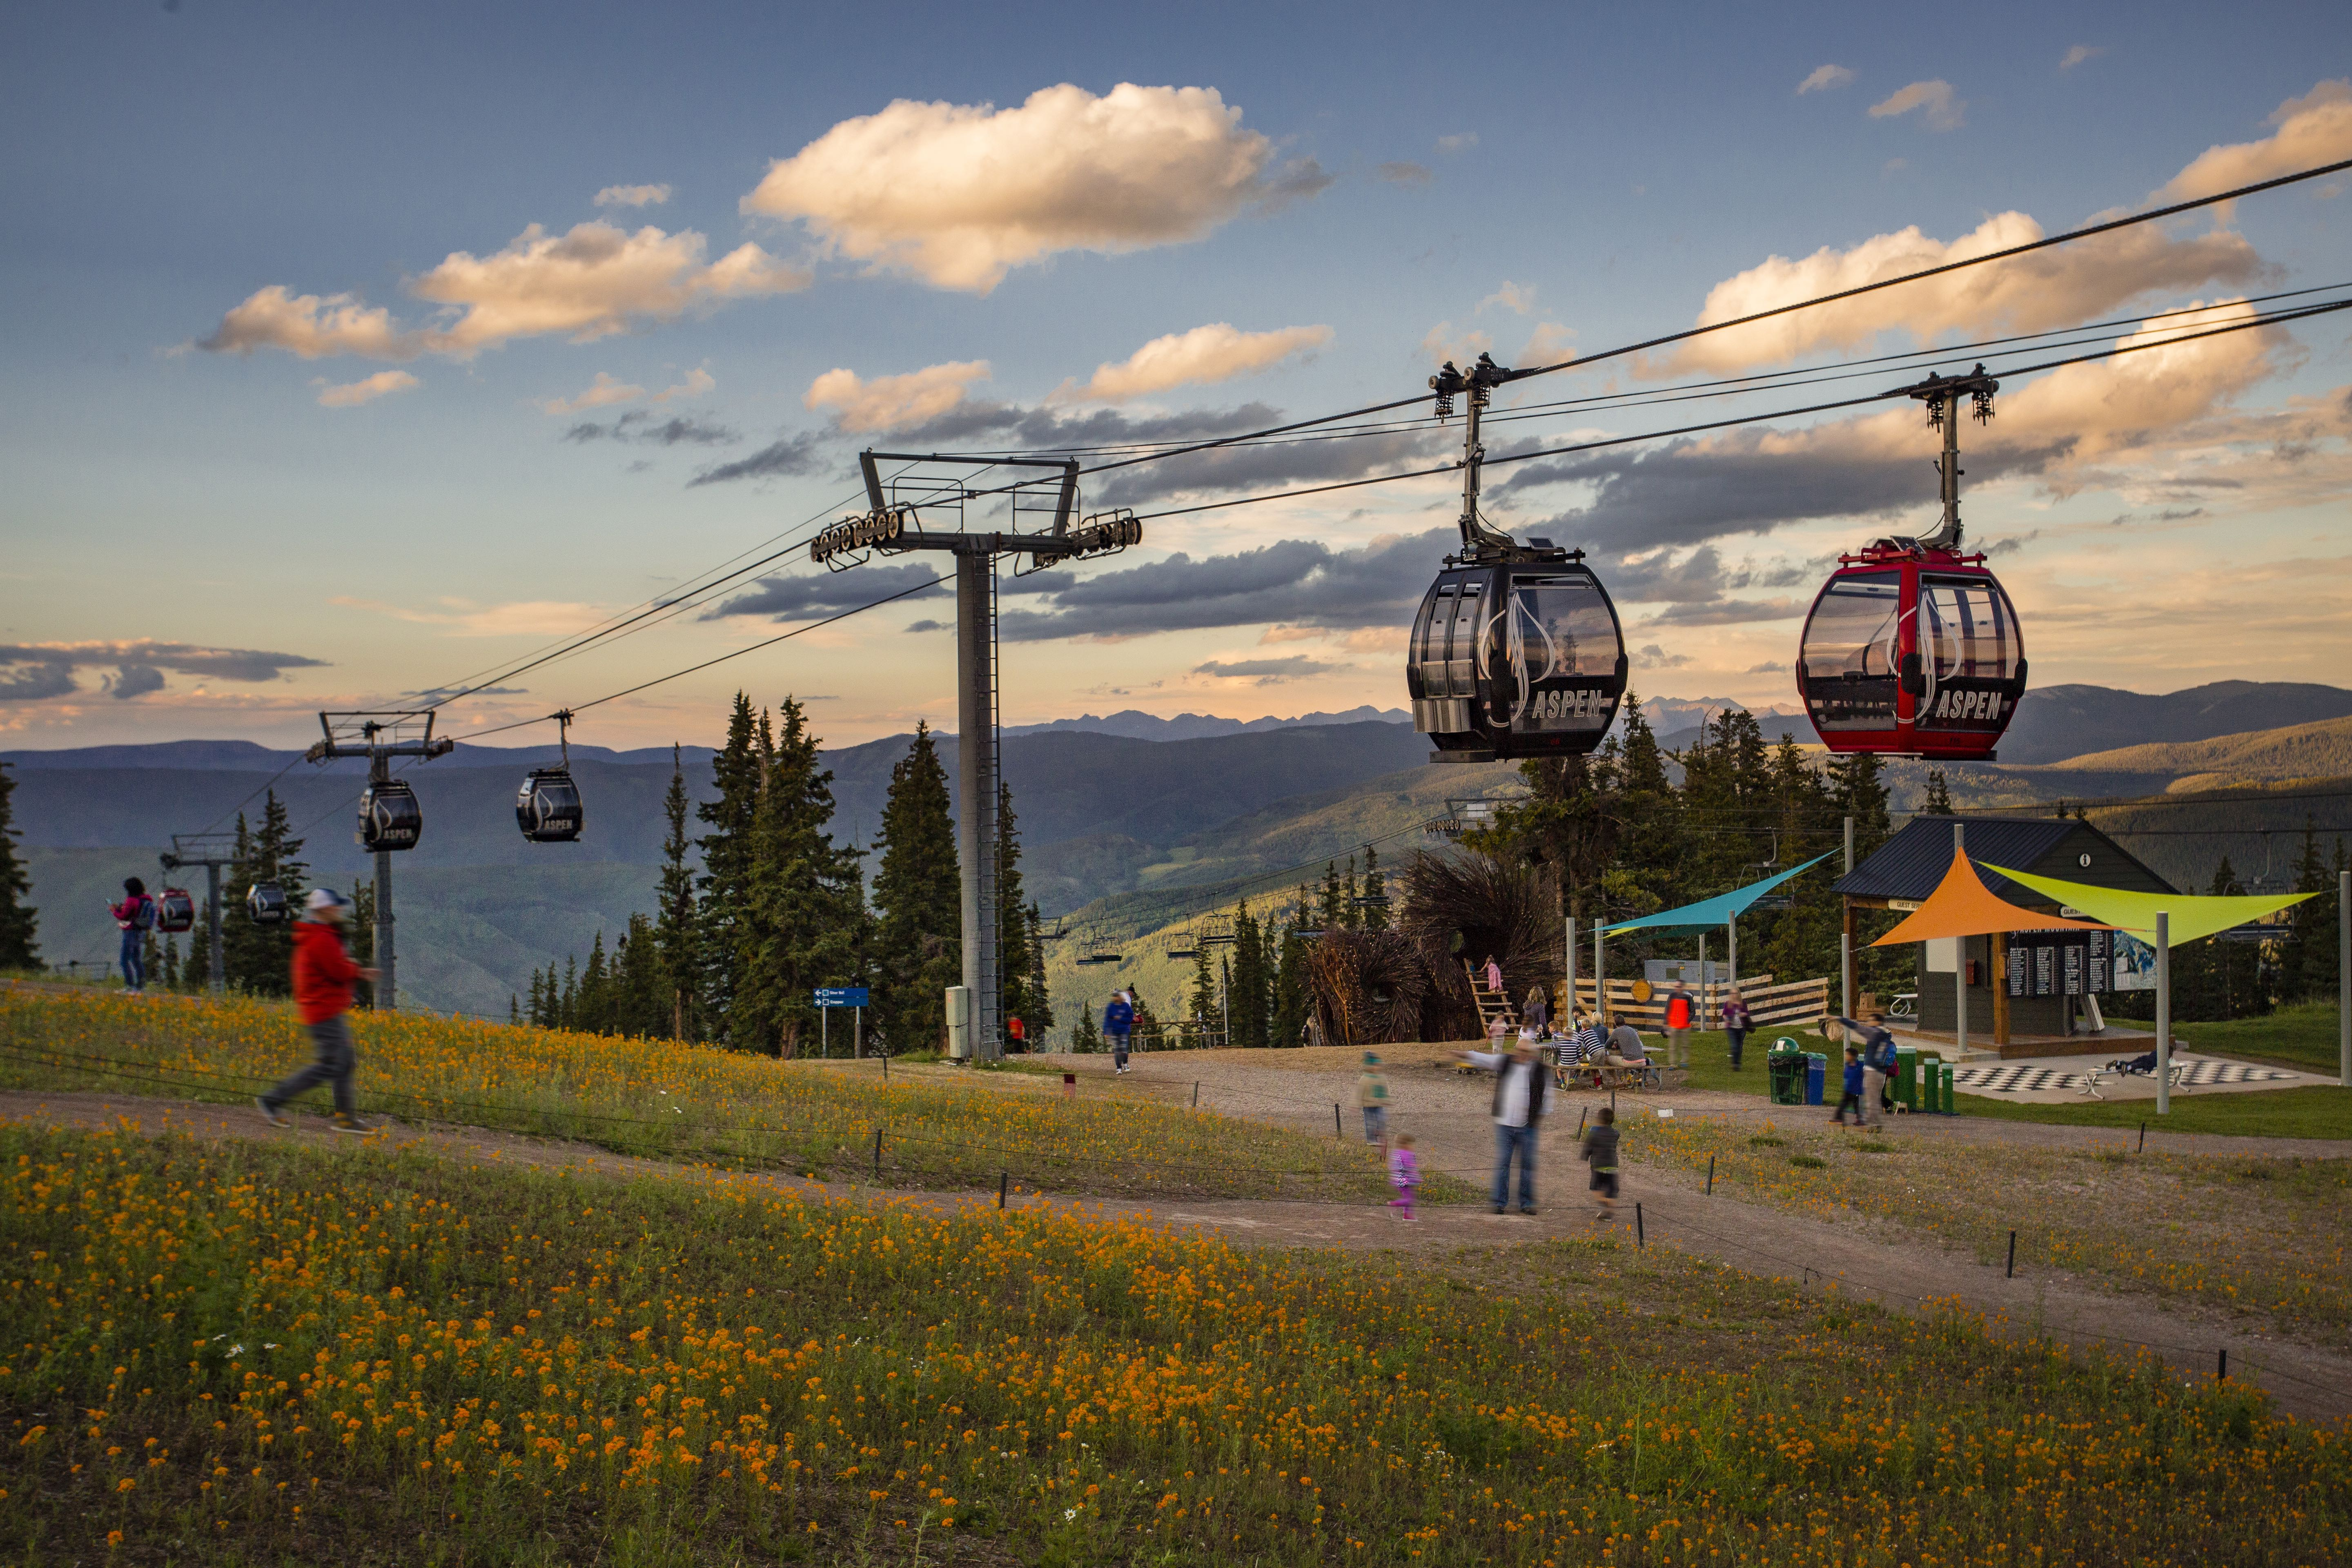 Gondolas arrive at peak of Aspen Mountain in Fall